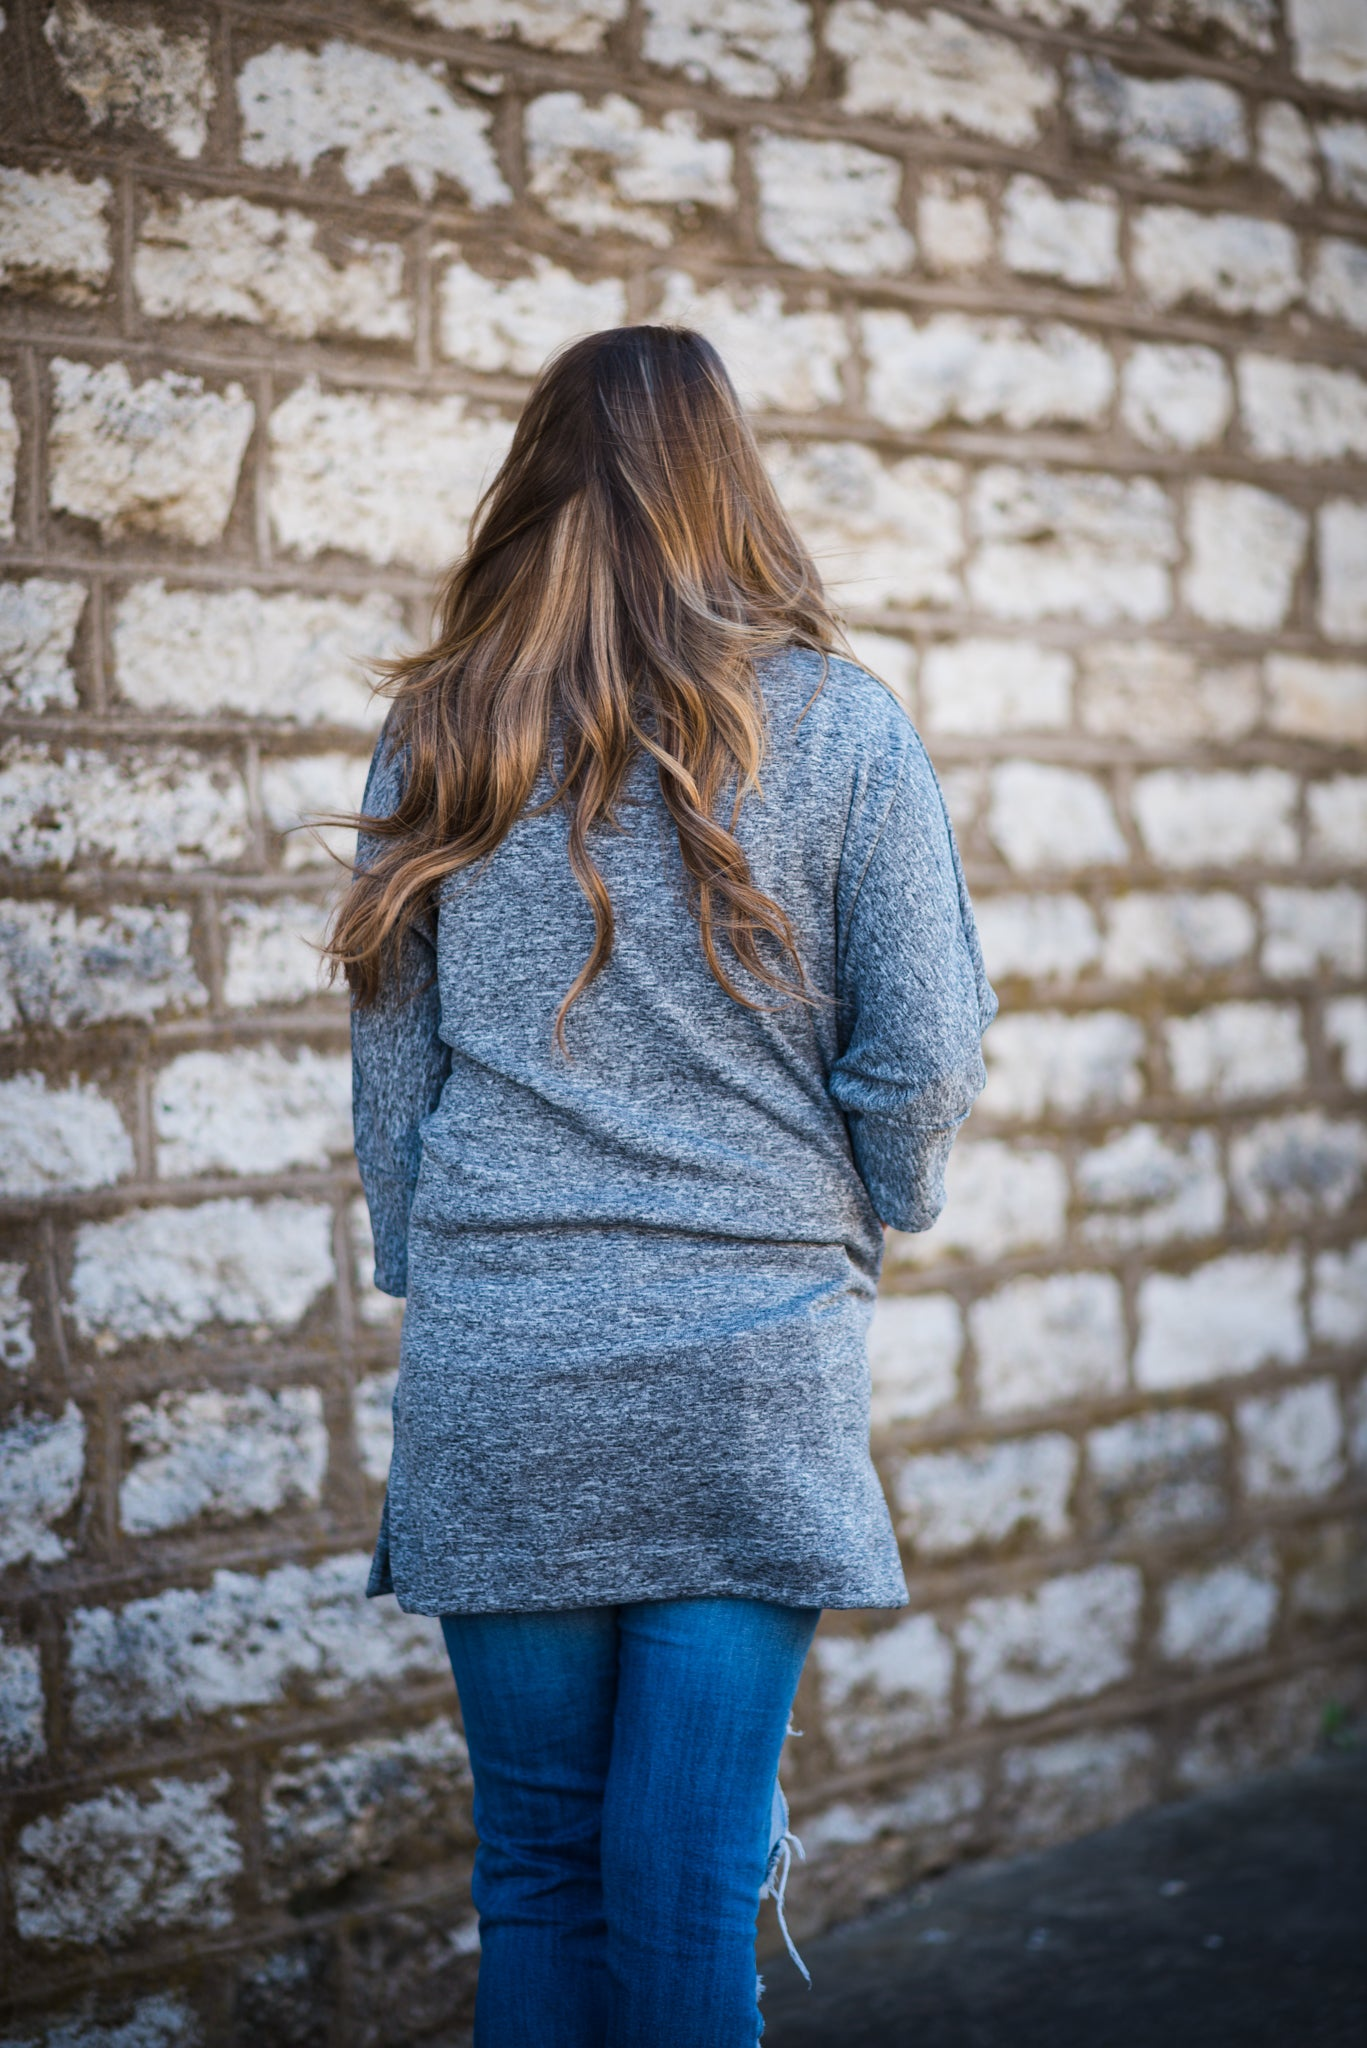 Maudye Jayne 3/4 Sleeve Cowl Neck Sweater | MJ Swoodie - Gray, Unclassified - Lola Cerina Boutique